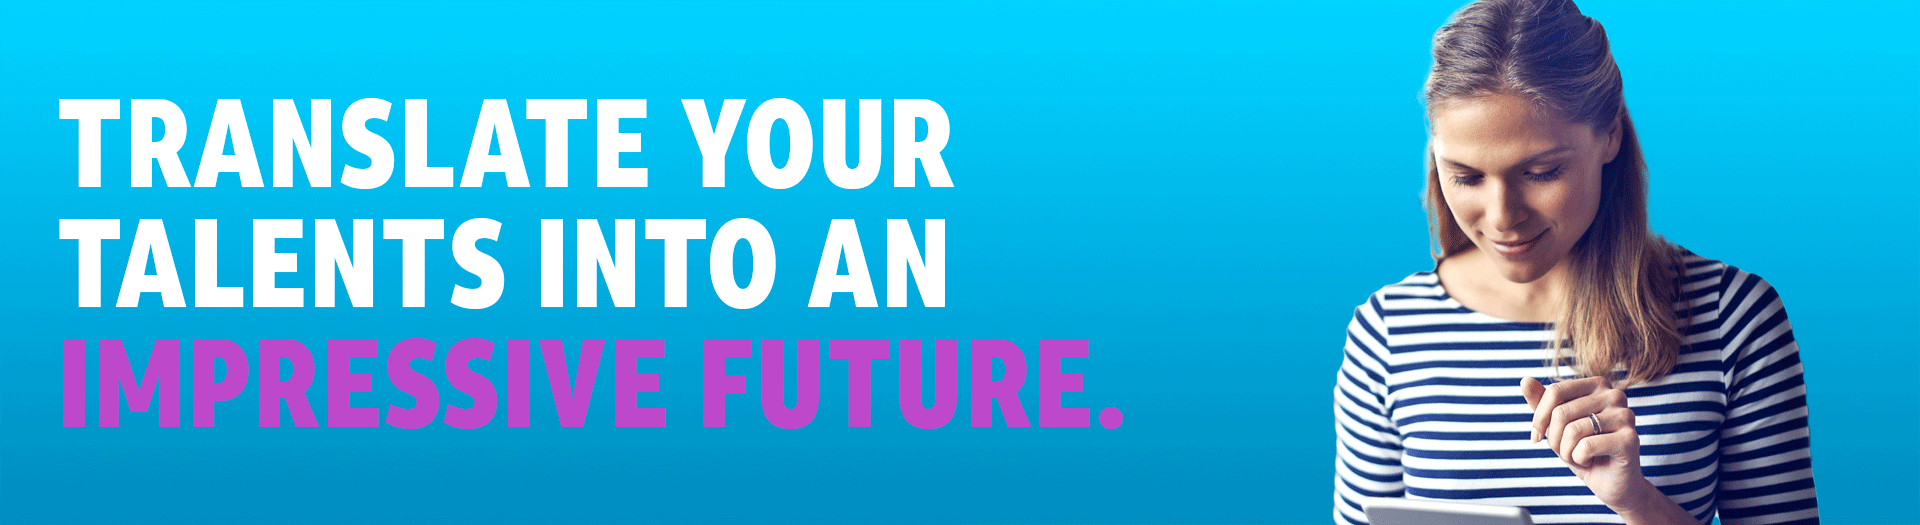 Translate your talents into an impressive future